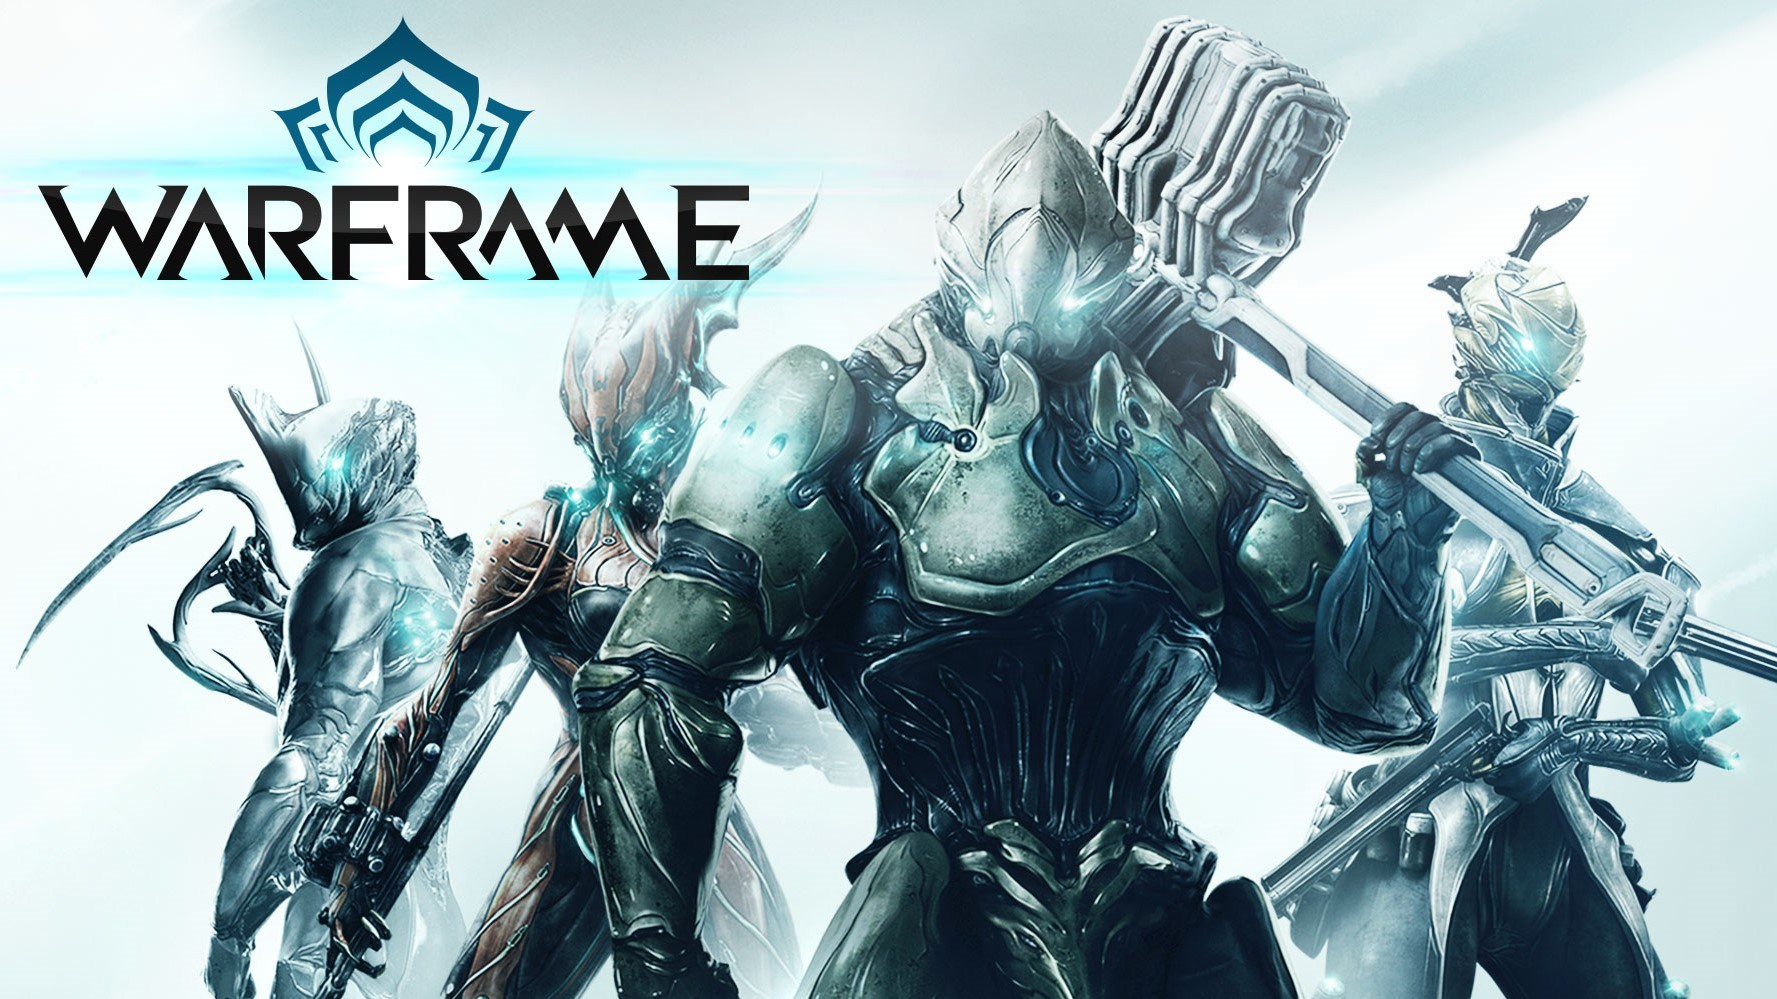 [FPS Benchmarks] Warframe on NVIDIA GeForce RTX 3070 (130W) and RTX 3070 (85W) – the RTX 3070 (130W) wins with ease